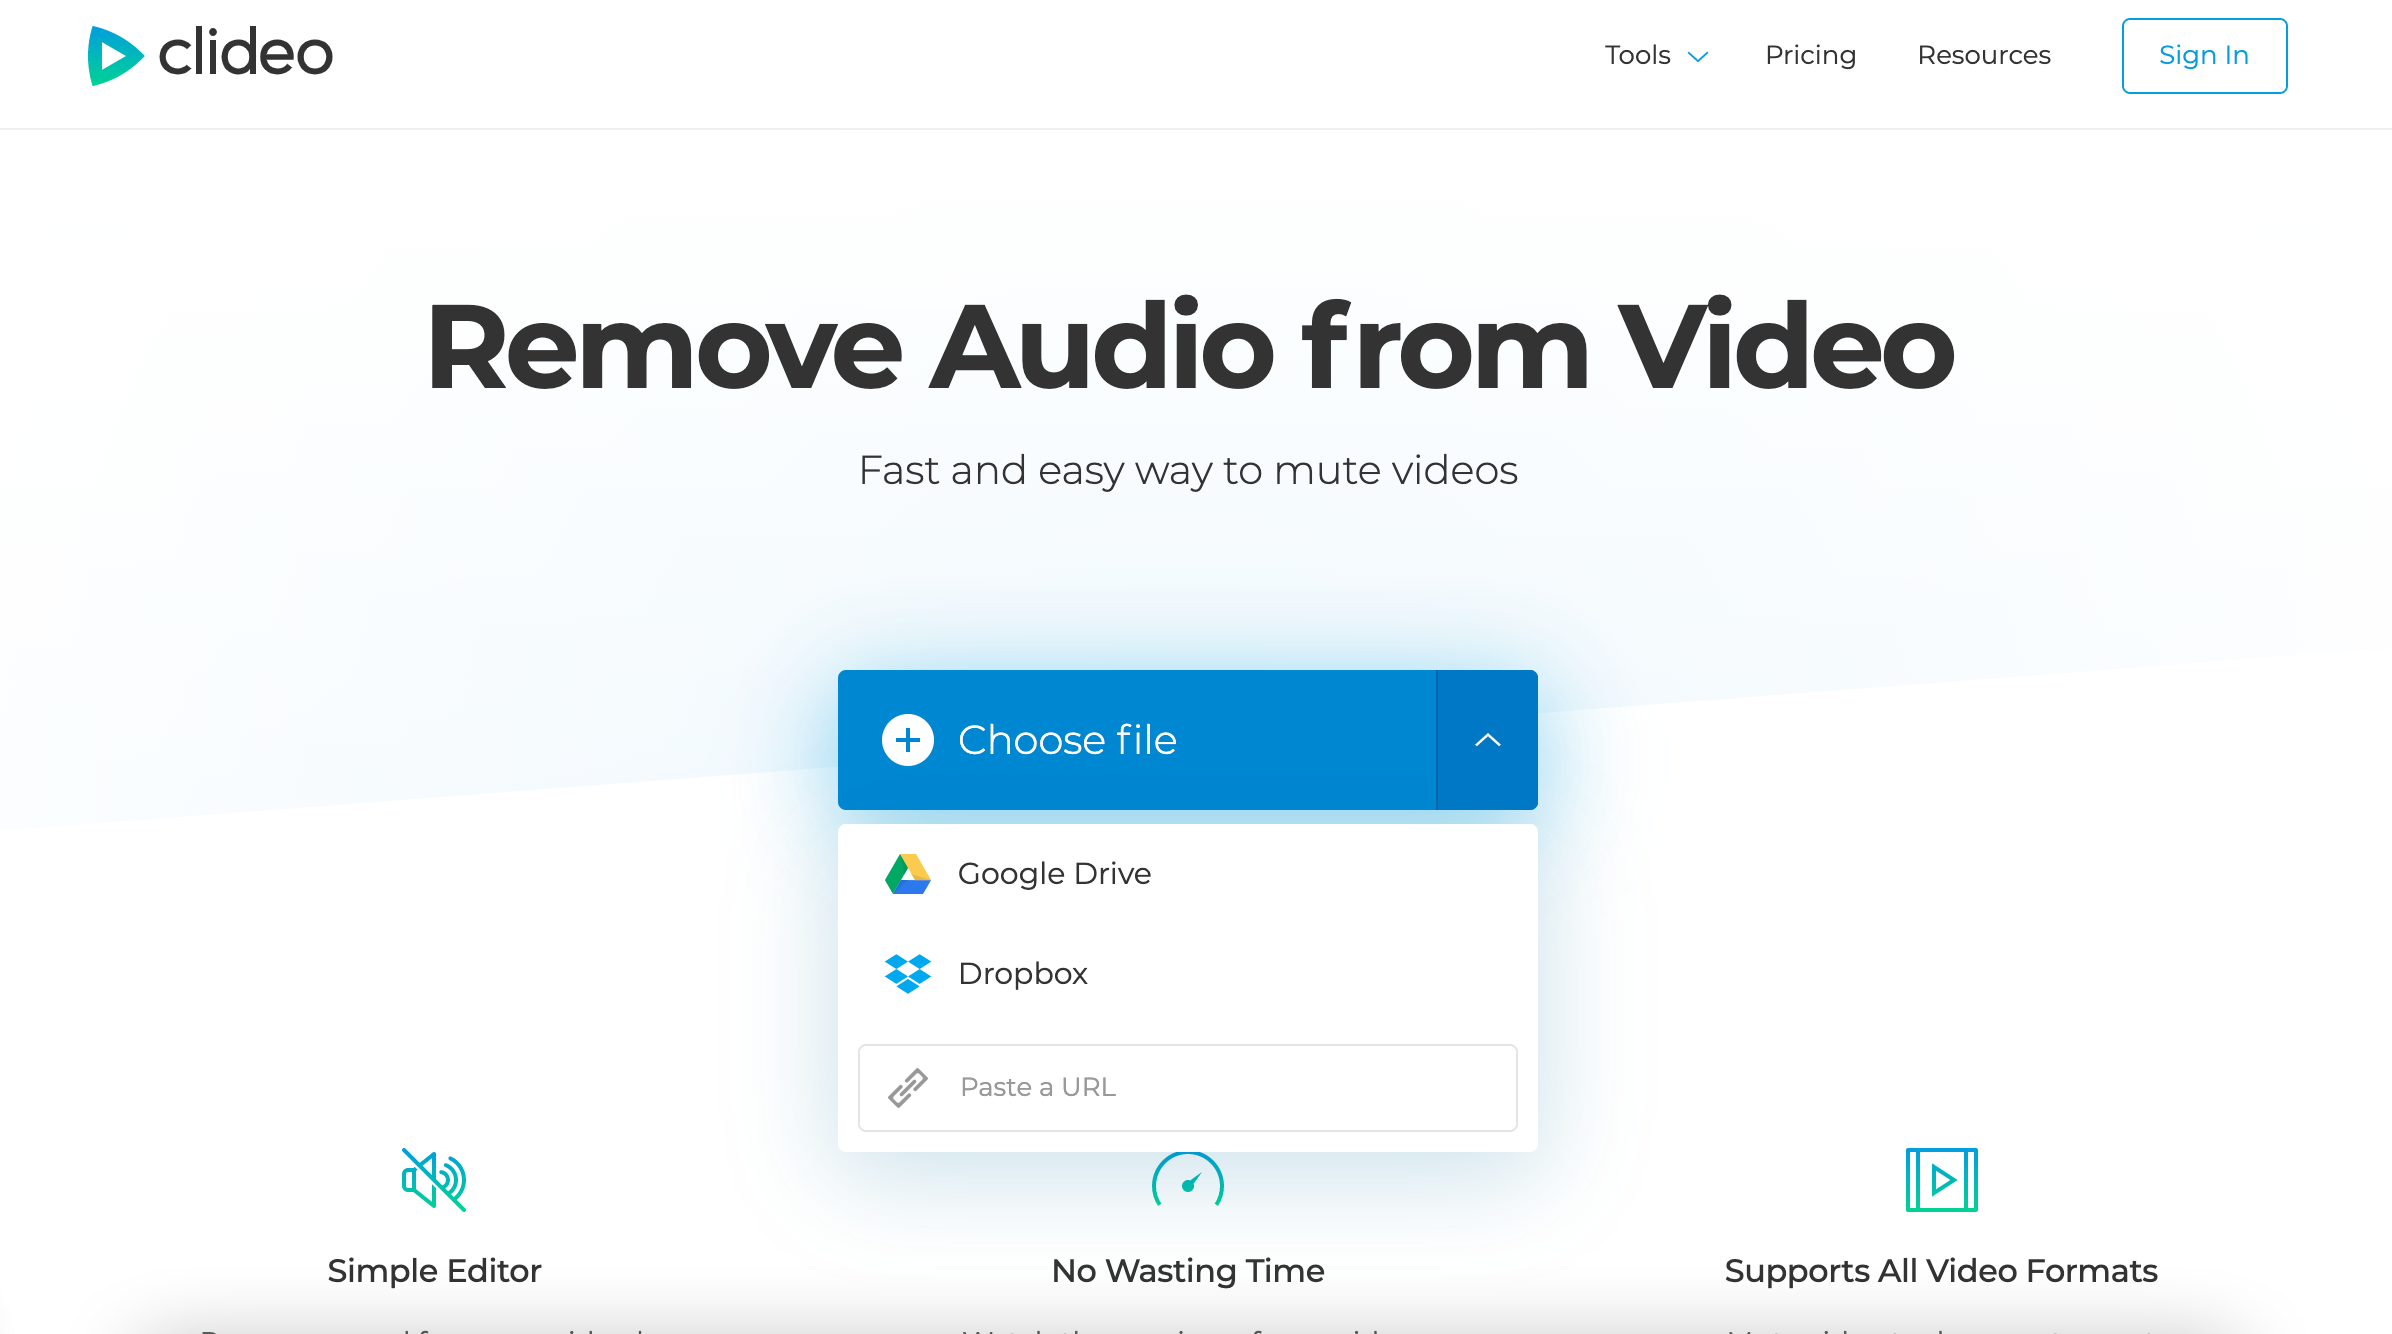 Upload MKV to remove audio from it